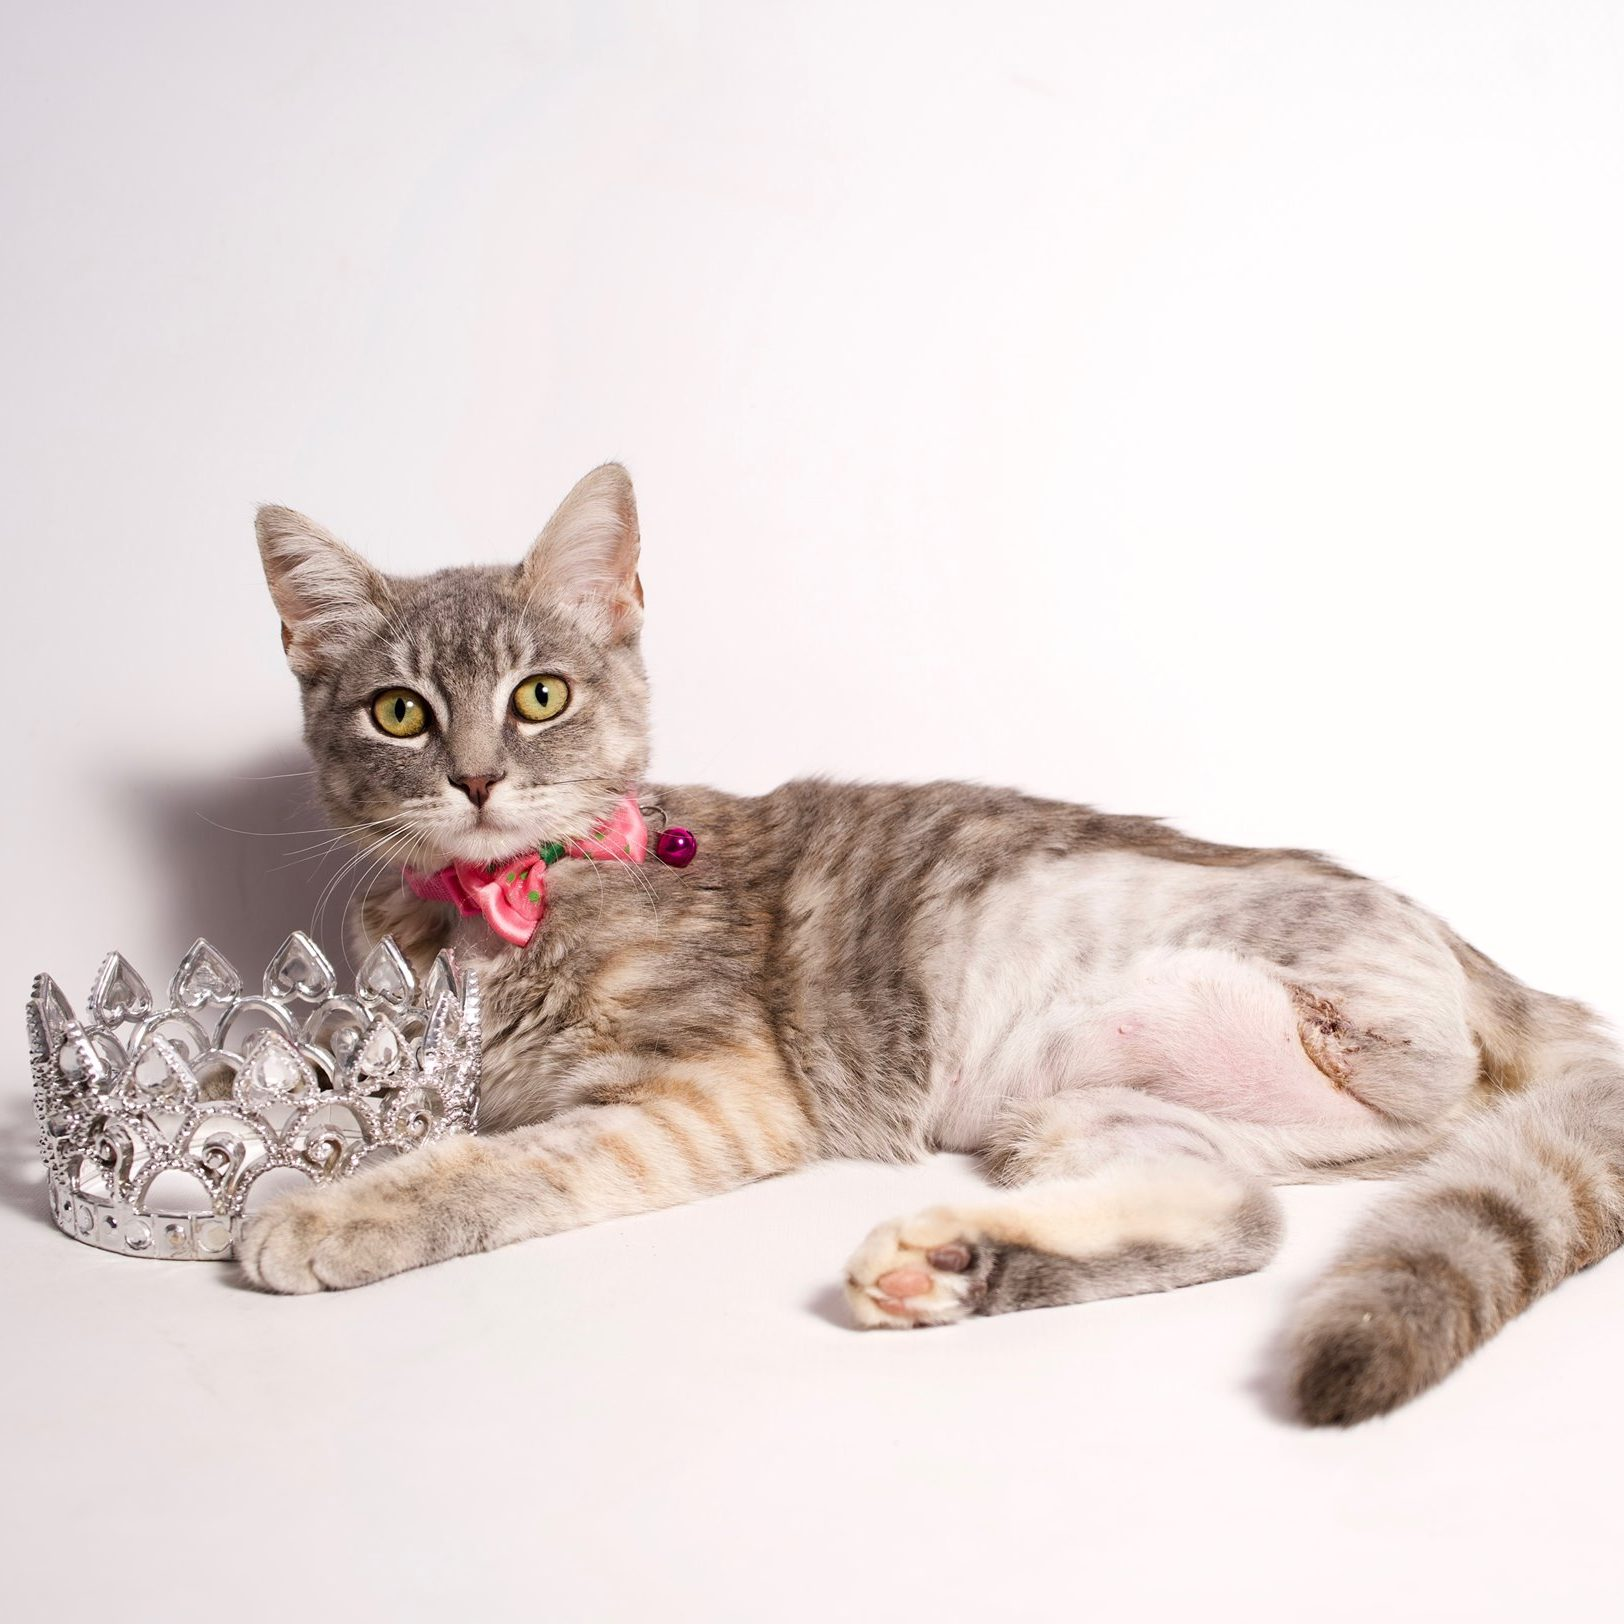 Adopt Glinda Rose the worlds best tripod kitty with Foster Army Animal Rescue in Riverside, CA